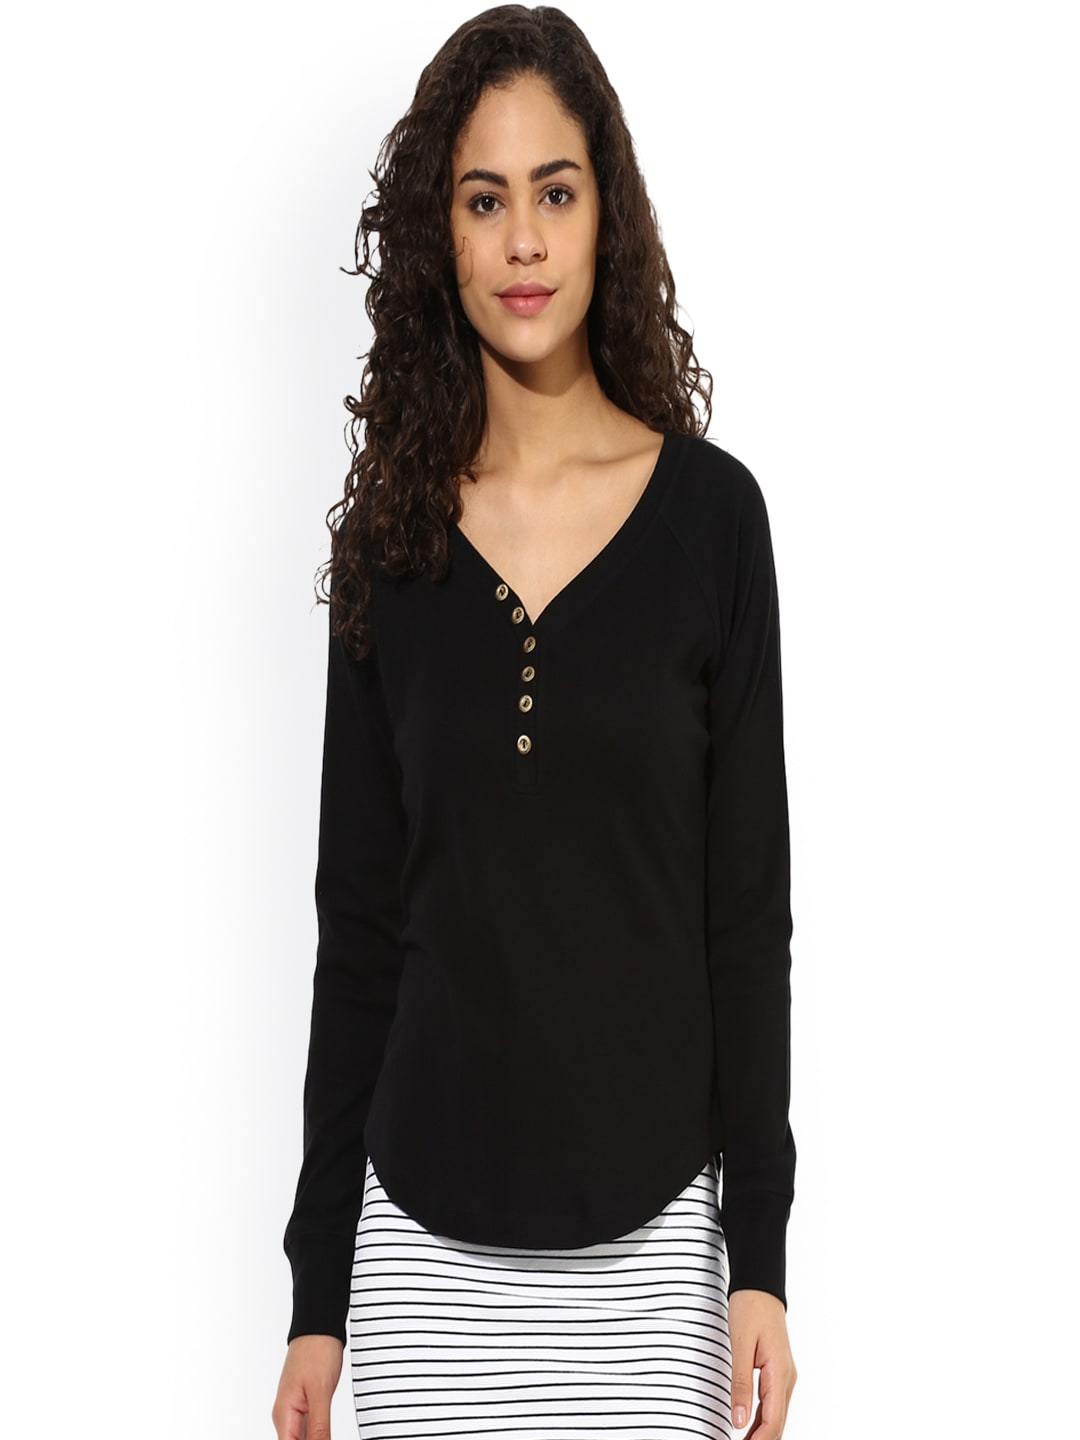 339eb3faa8 Tops - Buy Designer Tops for Girls   Women Online